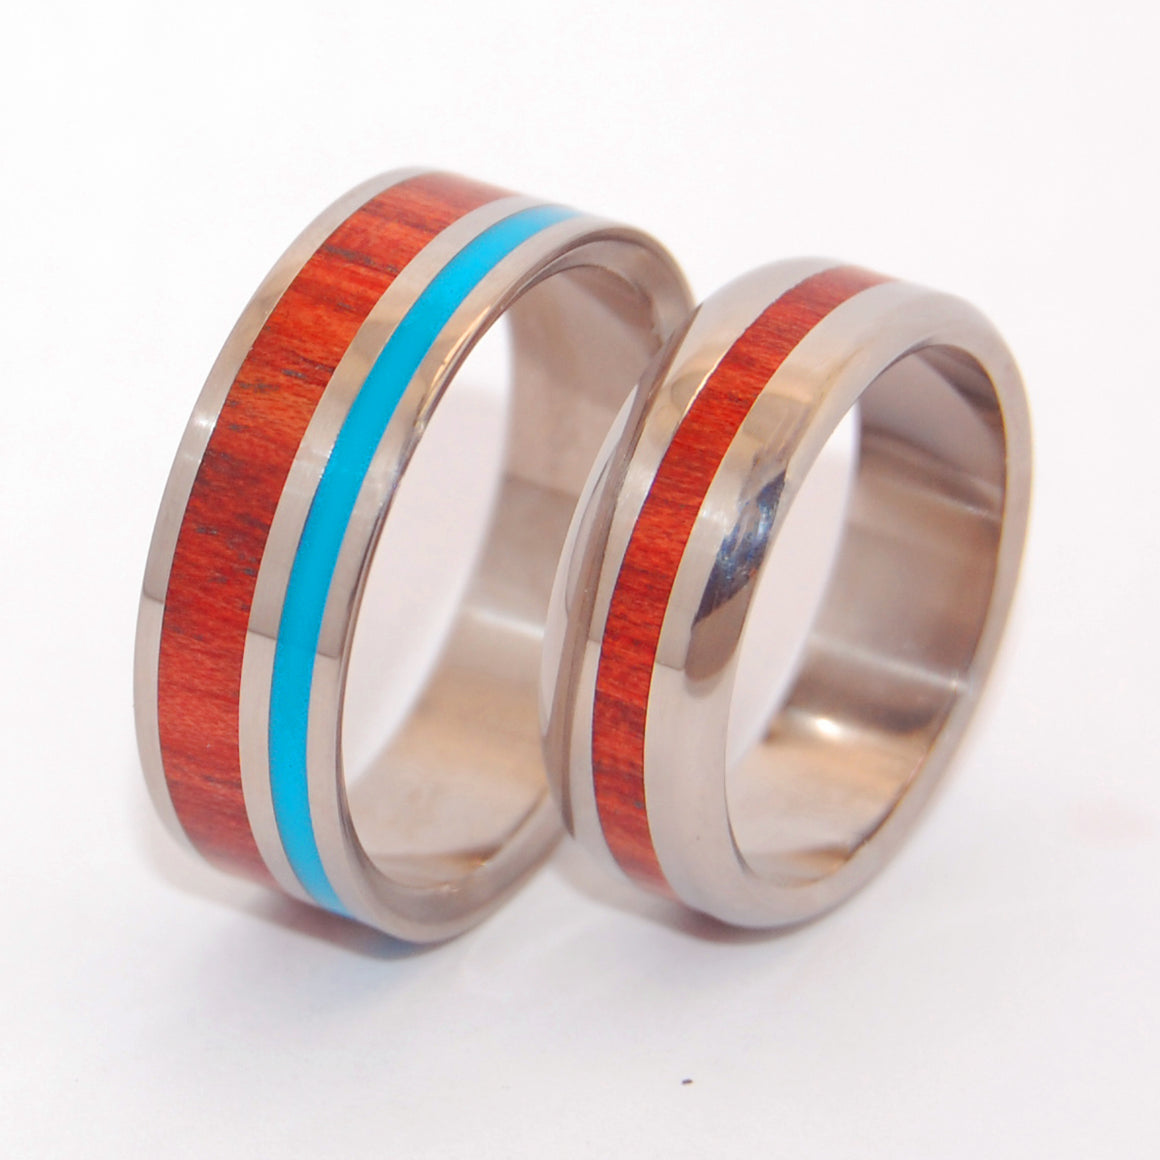 Shore Up My Heart With Your Heart | Wood Wedding Ring Set